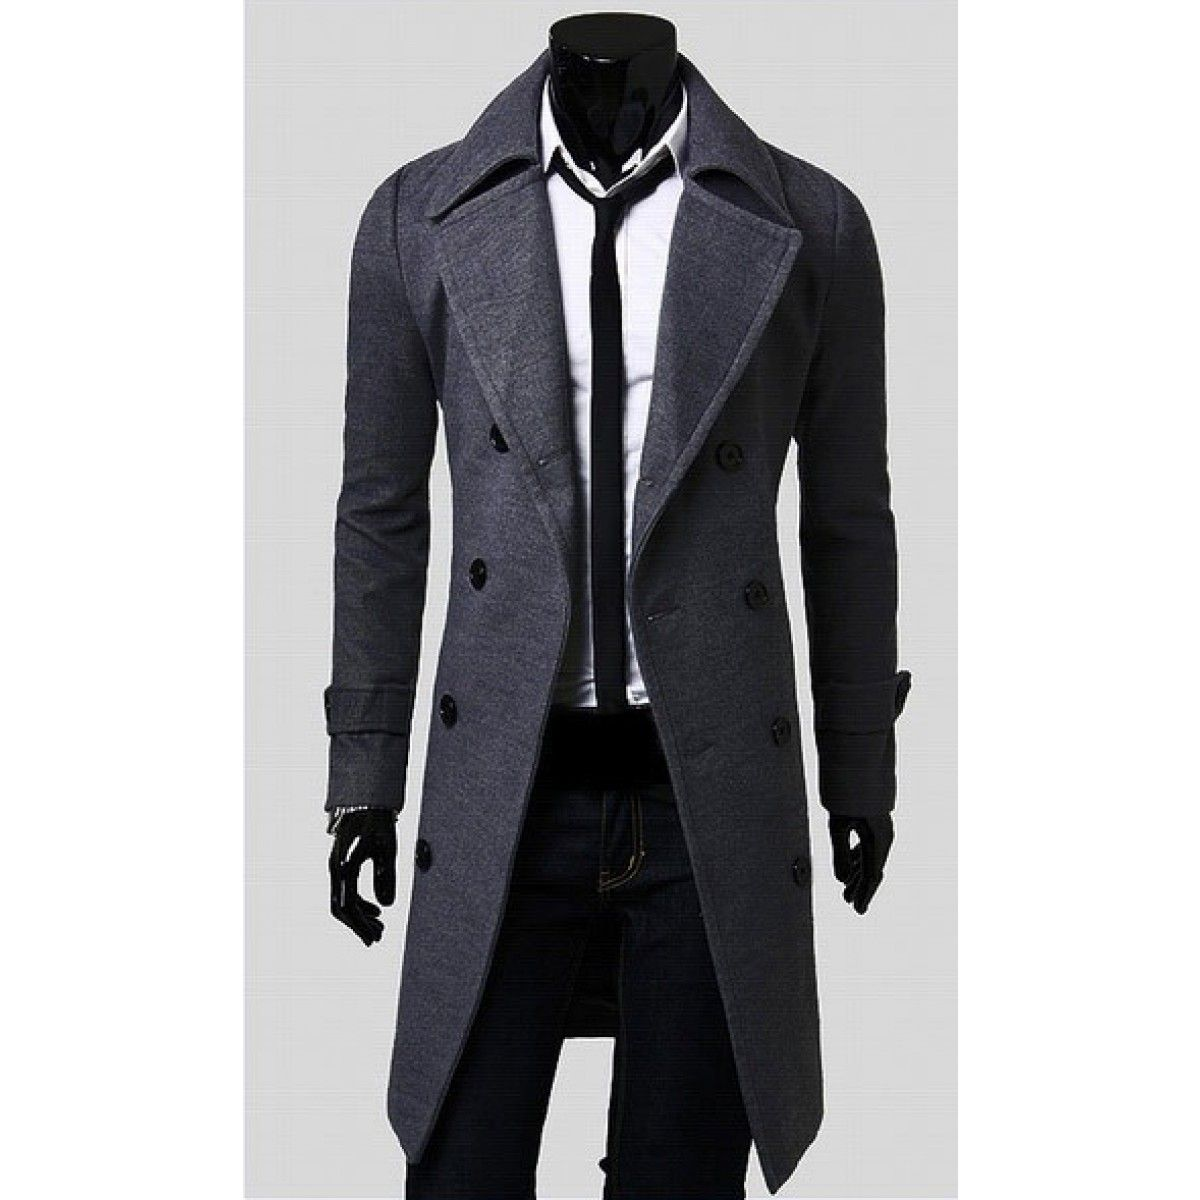 manteau long homme | Manteau long homme, Trench coat homme